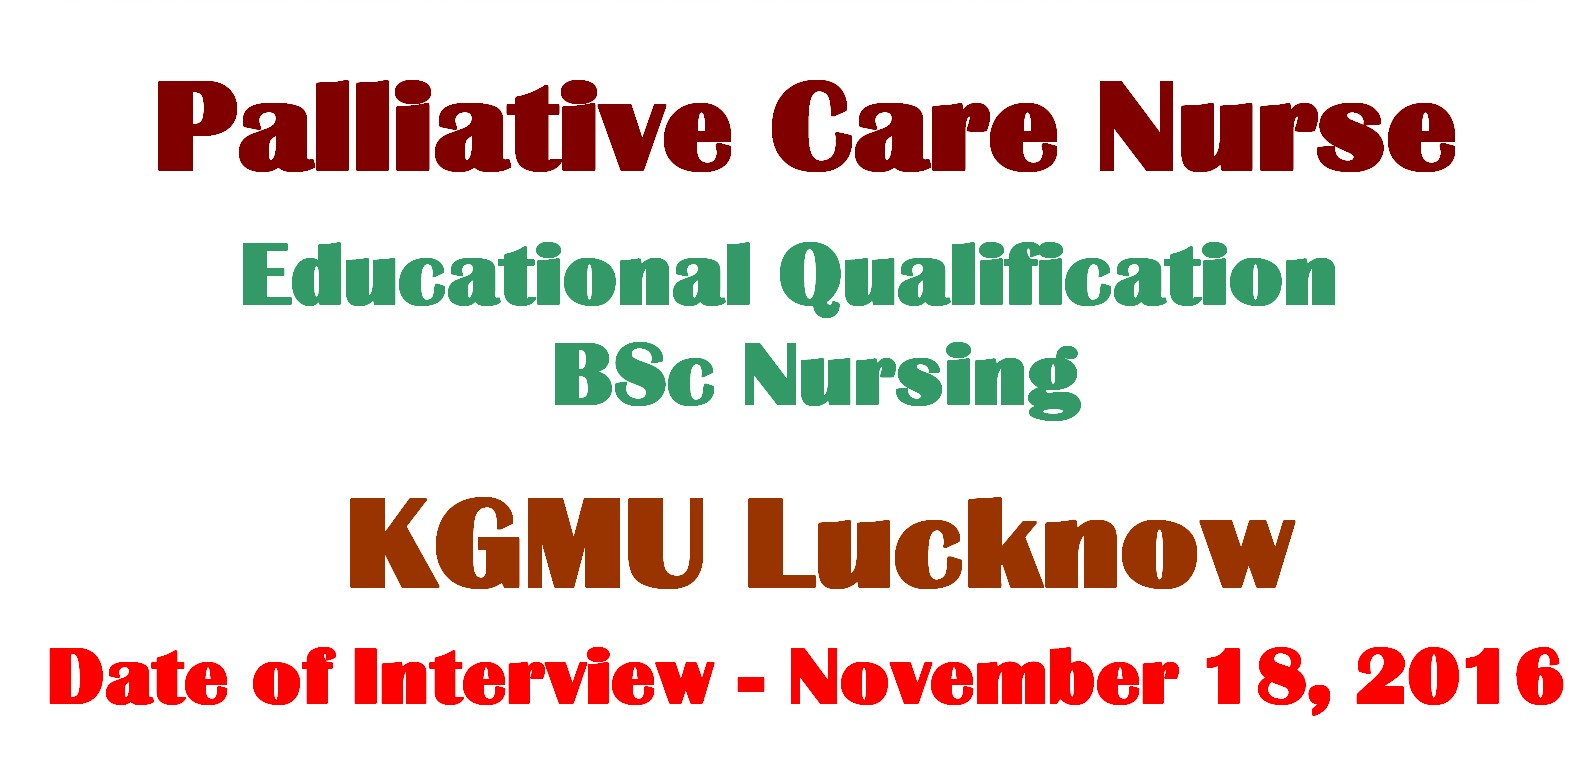 nurses job vacancy staff nurse vacancy in kgmu lucknow  king george medical university kgmu lucknow up has invited applications for filling up the staff nurse posts by walk in interview